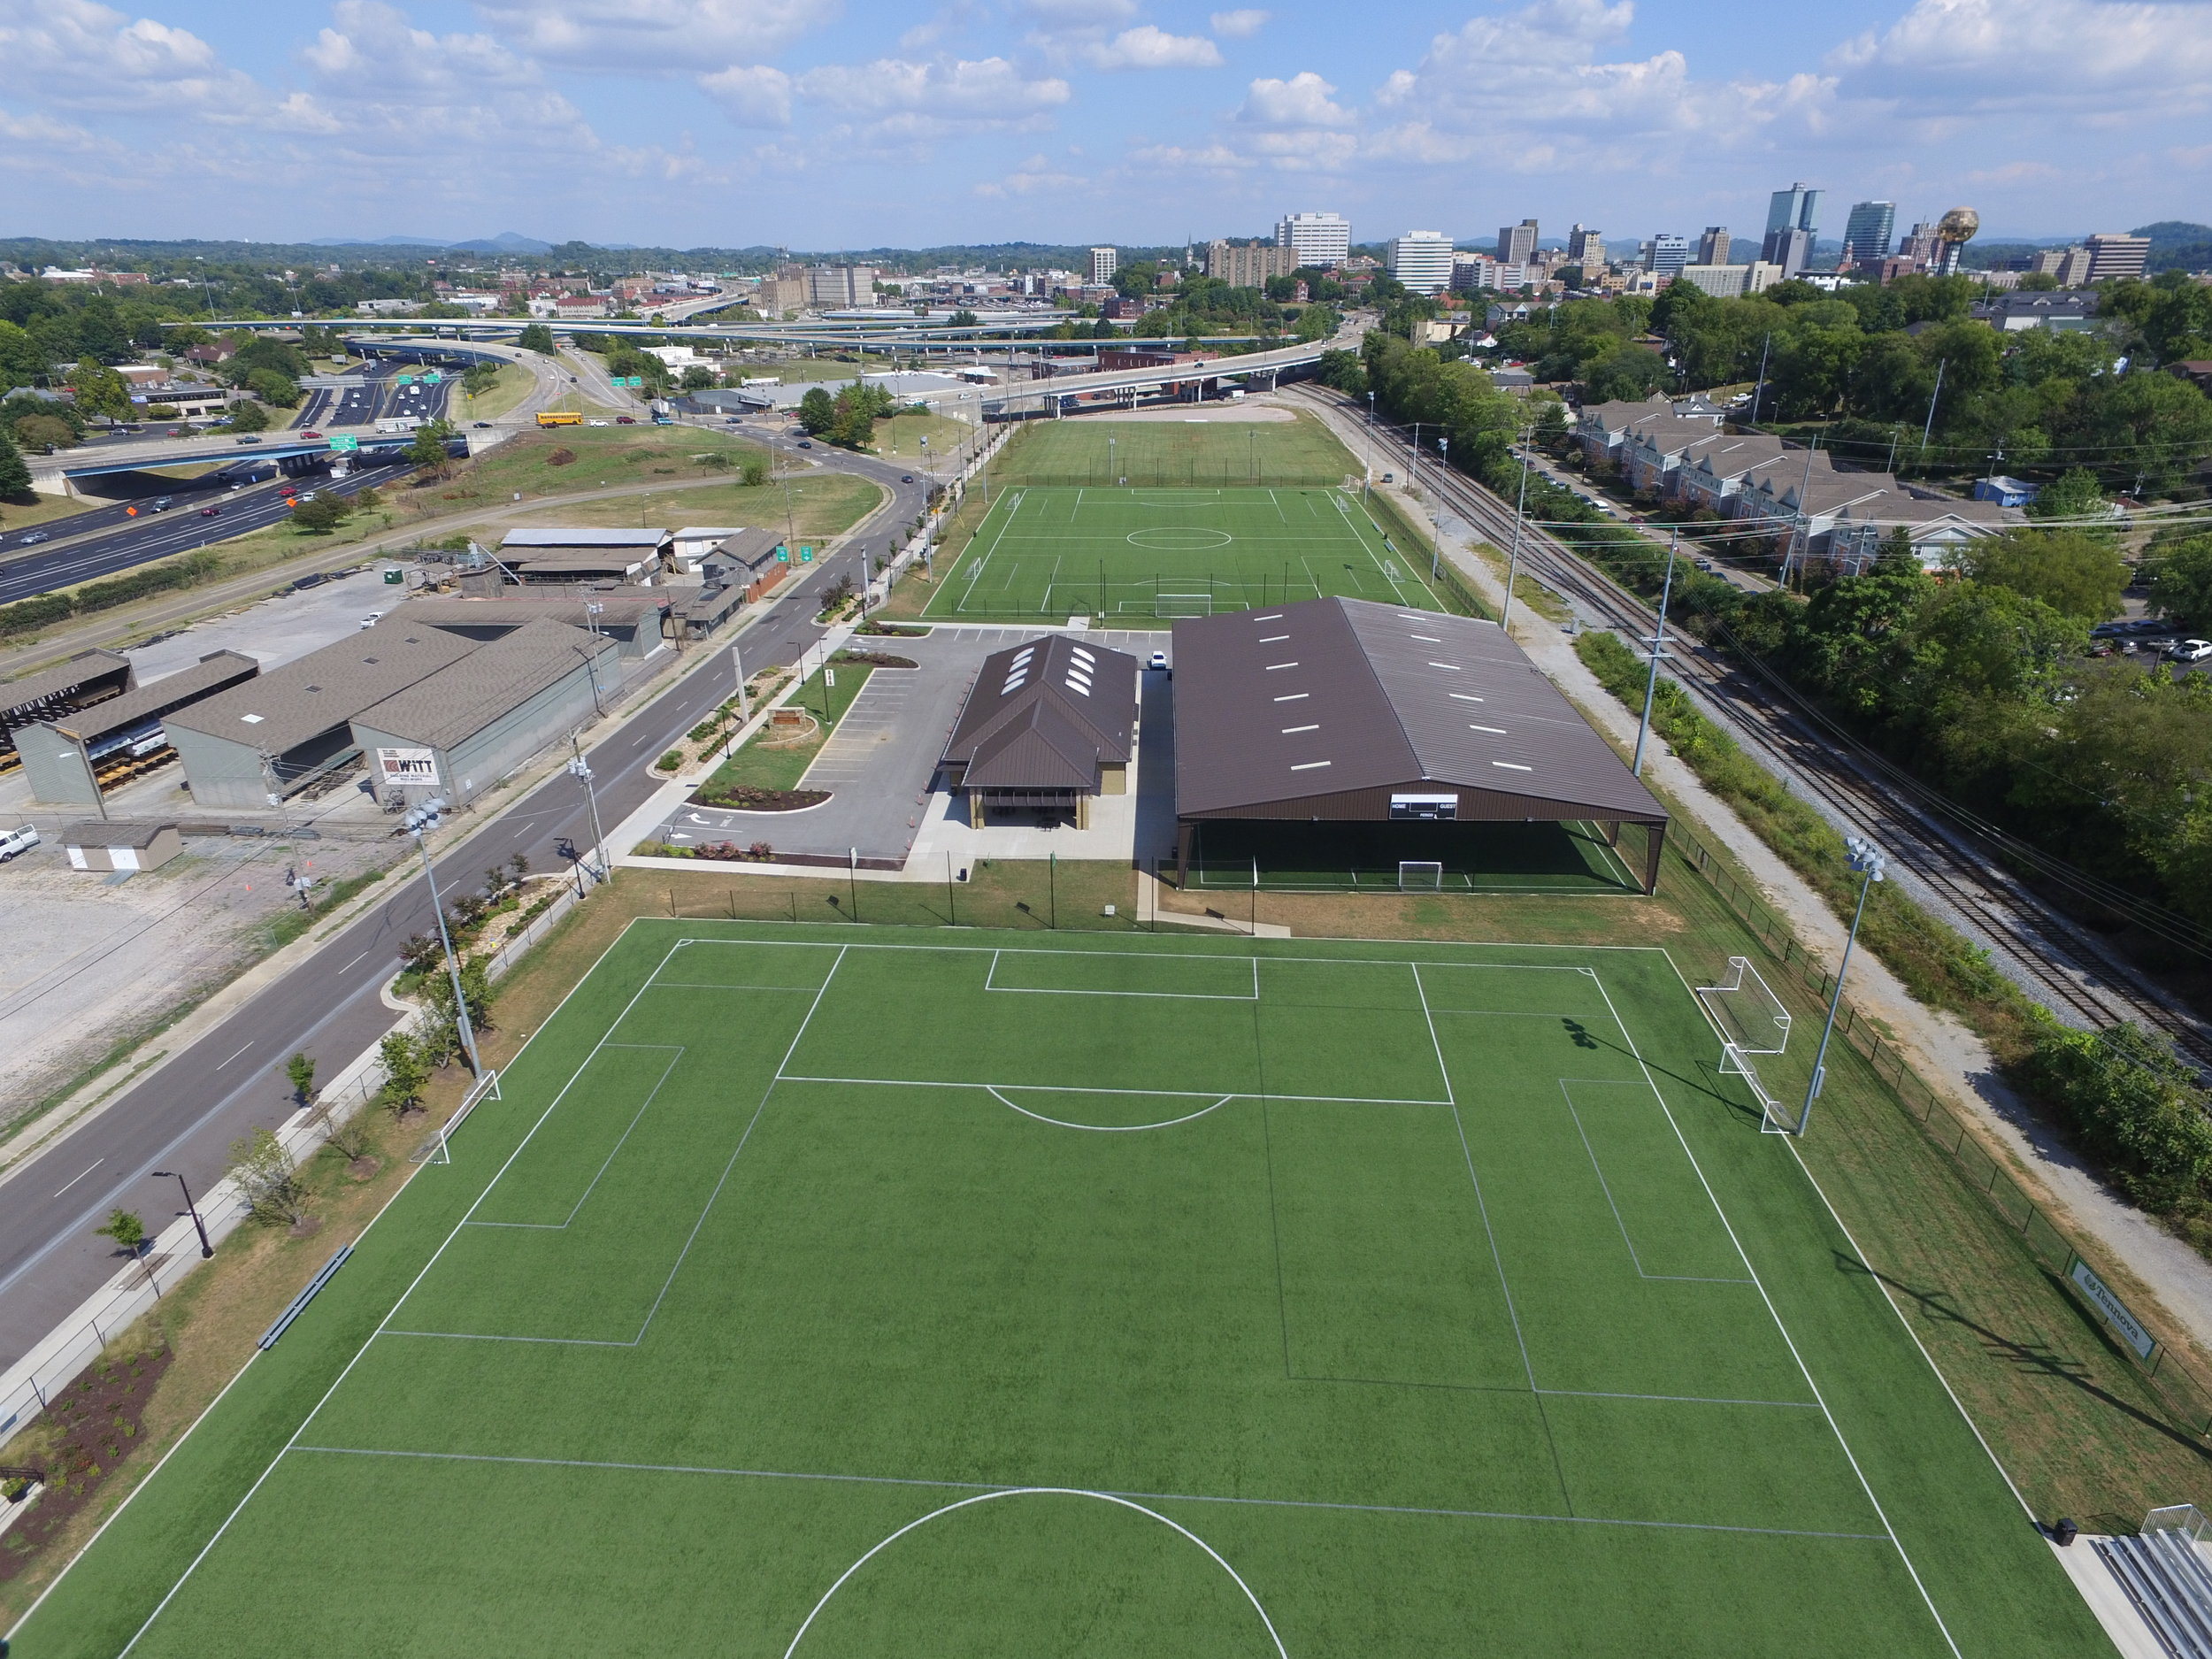 Distinguished Multi Field Facility Award in 2016for the Sansom Sports Complex in Knoxville, TN.Construction of two full size synthetic soccer fields, one natural grass field, fencing and netting, a pavilion covered field with adjacent fieldhouse and parking lot. Work also included a redesigned city streetscape with curbing, sidewalks, bus stop and landscaping. -